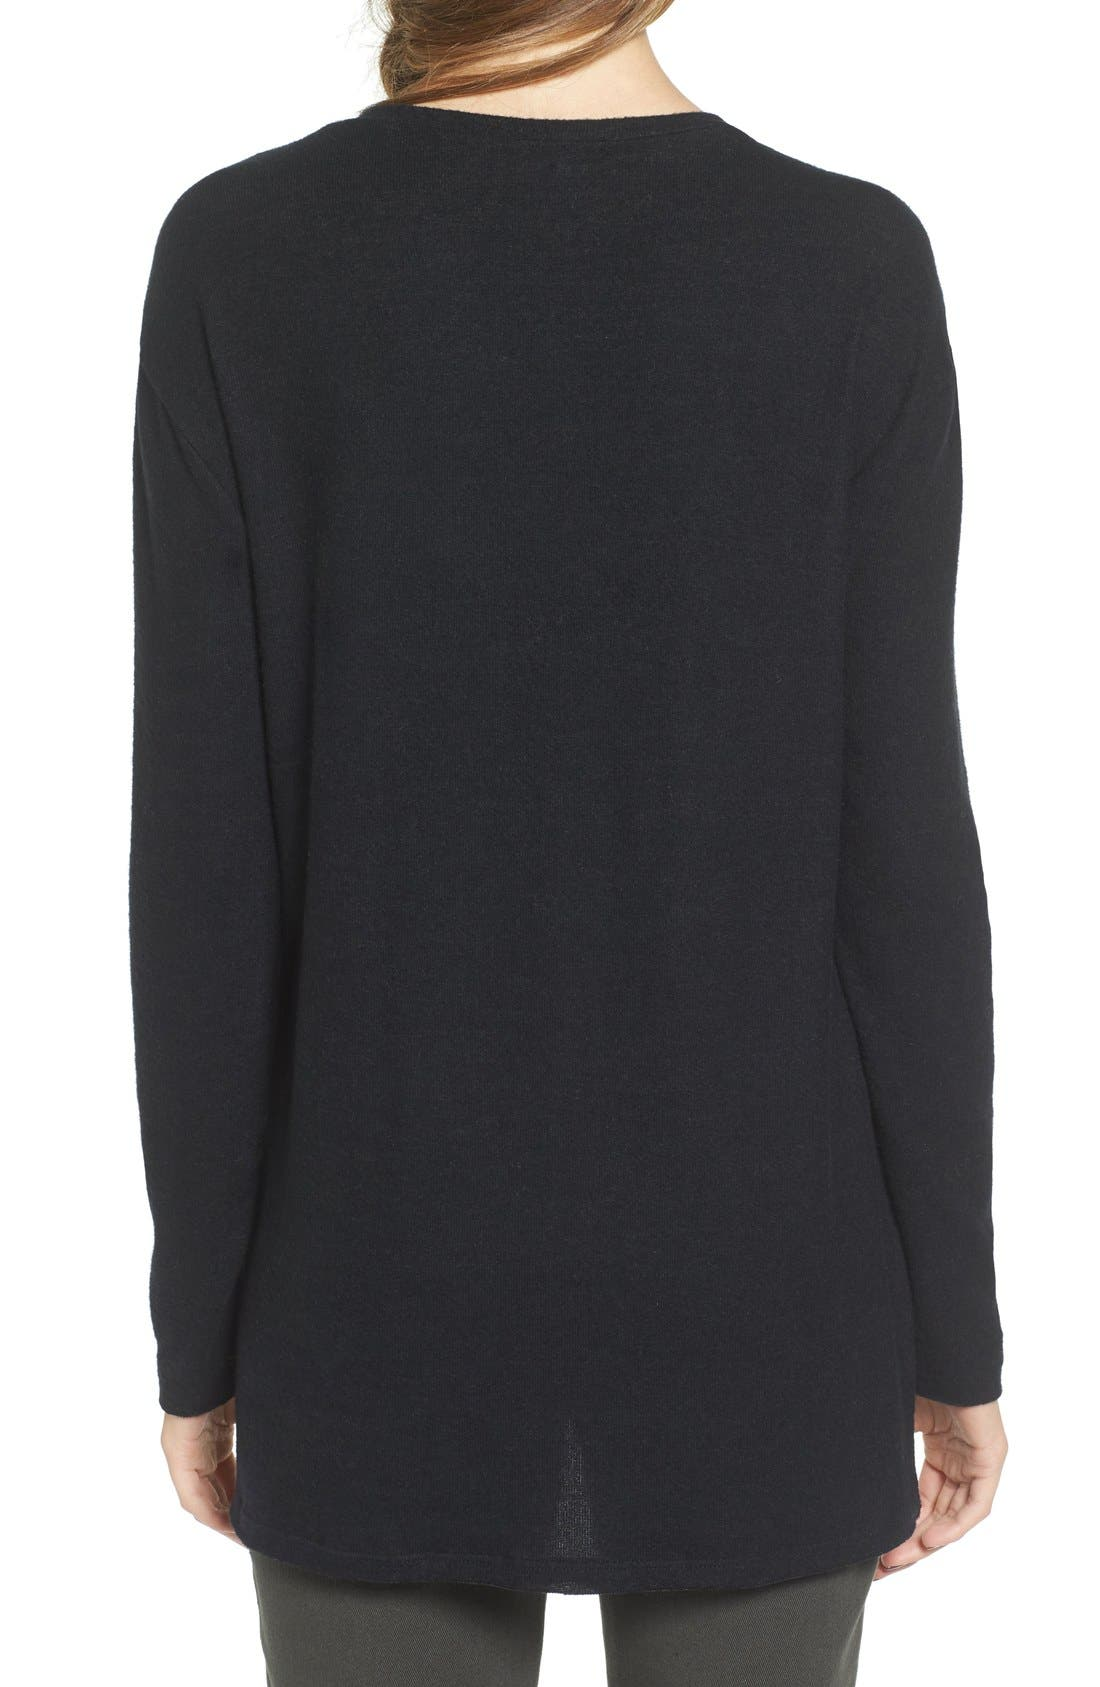 V-Neck Sweaters & Sweatshirts, Cowl Necks, Cable Knits | Nordstrom ...